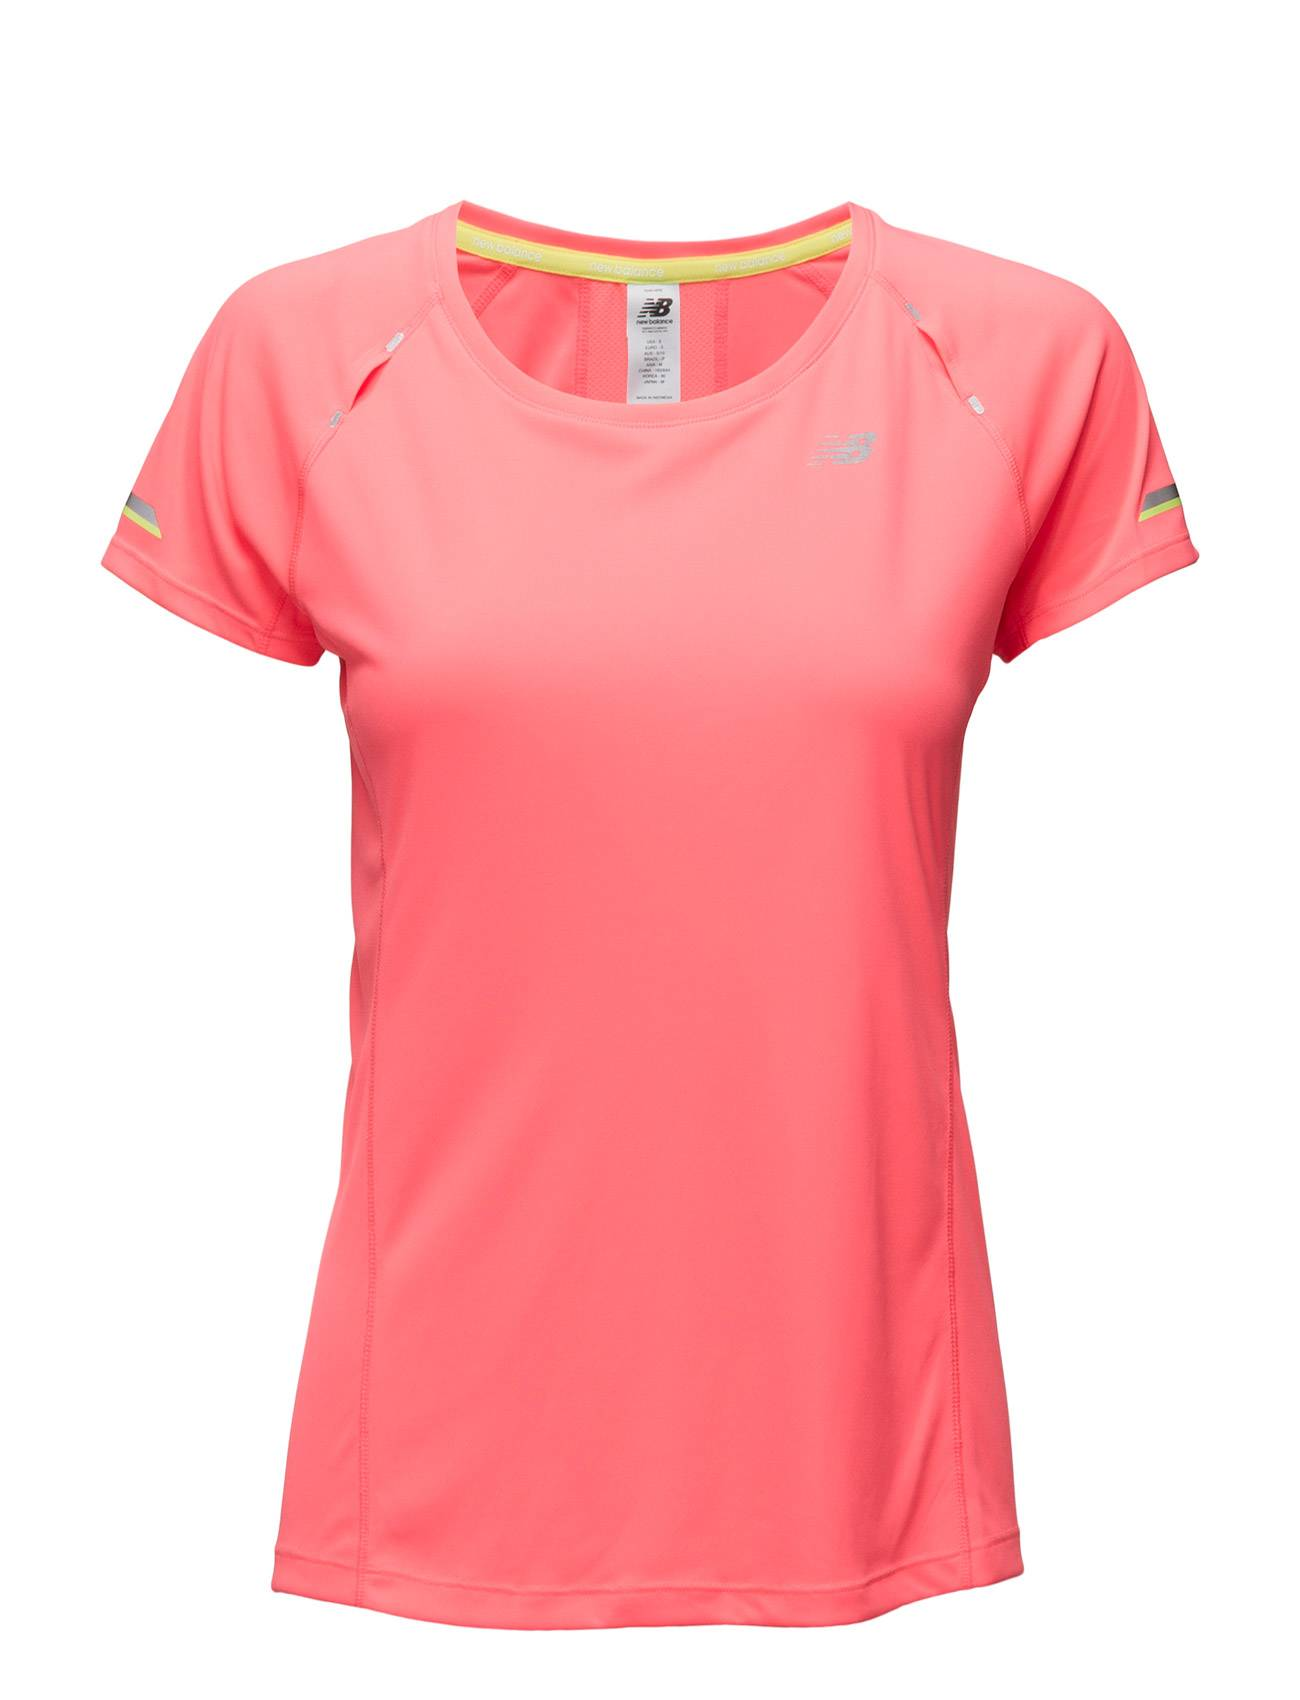 New Balance Nb Ice Short Sleeve